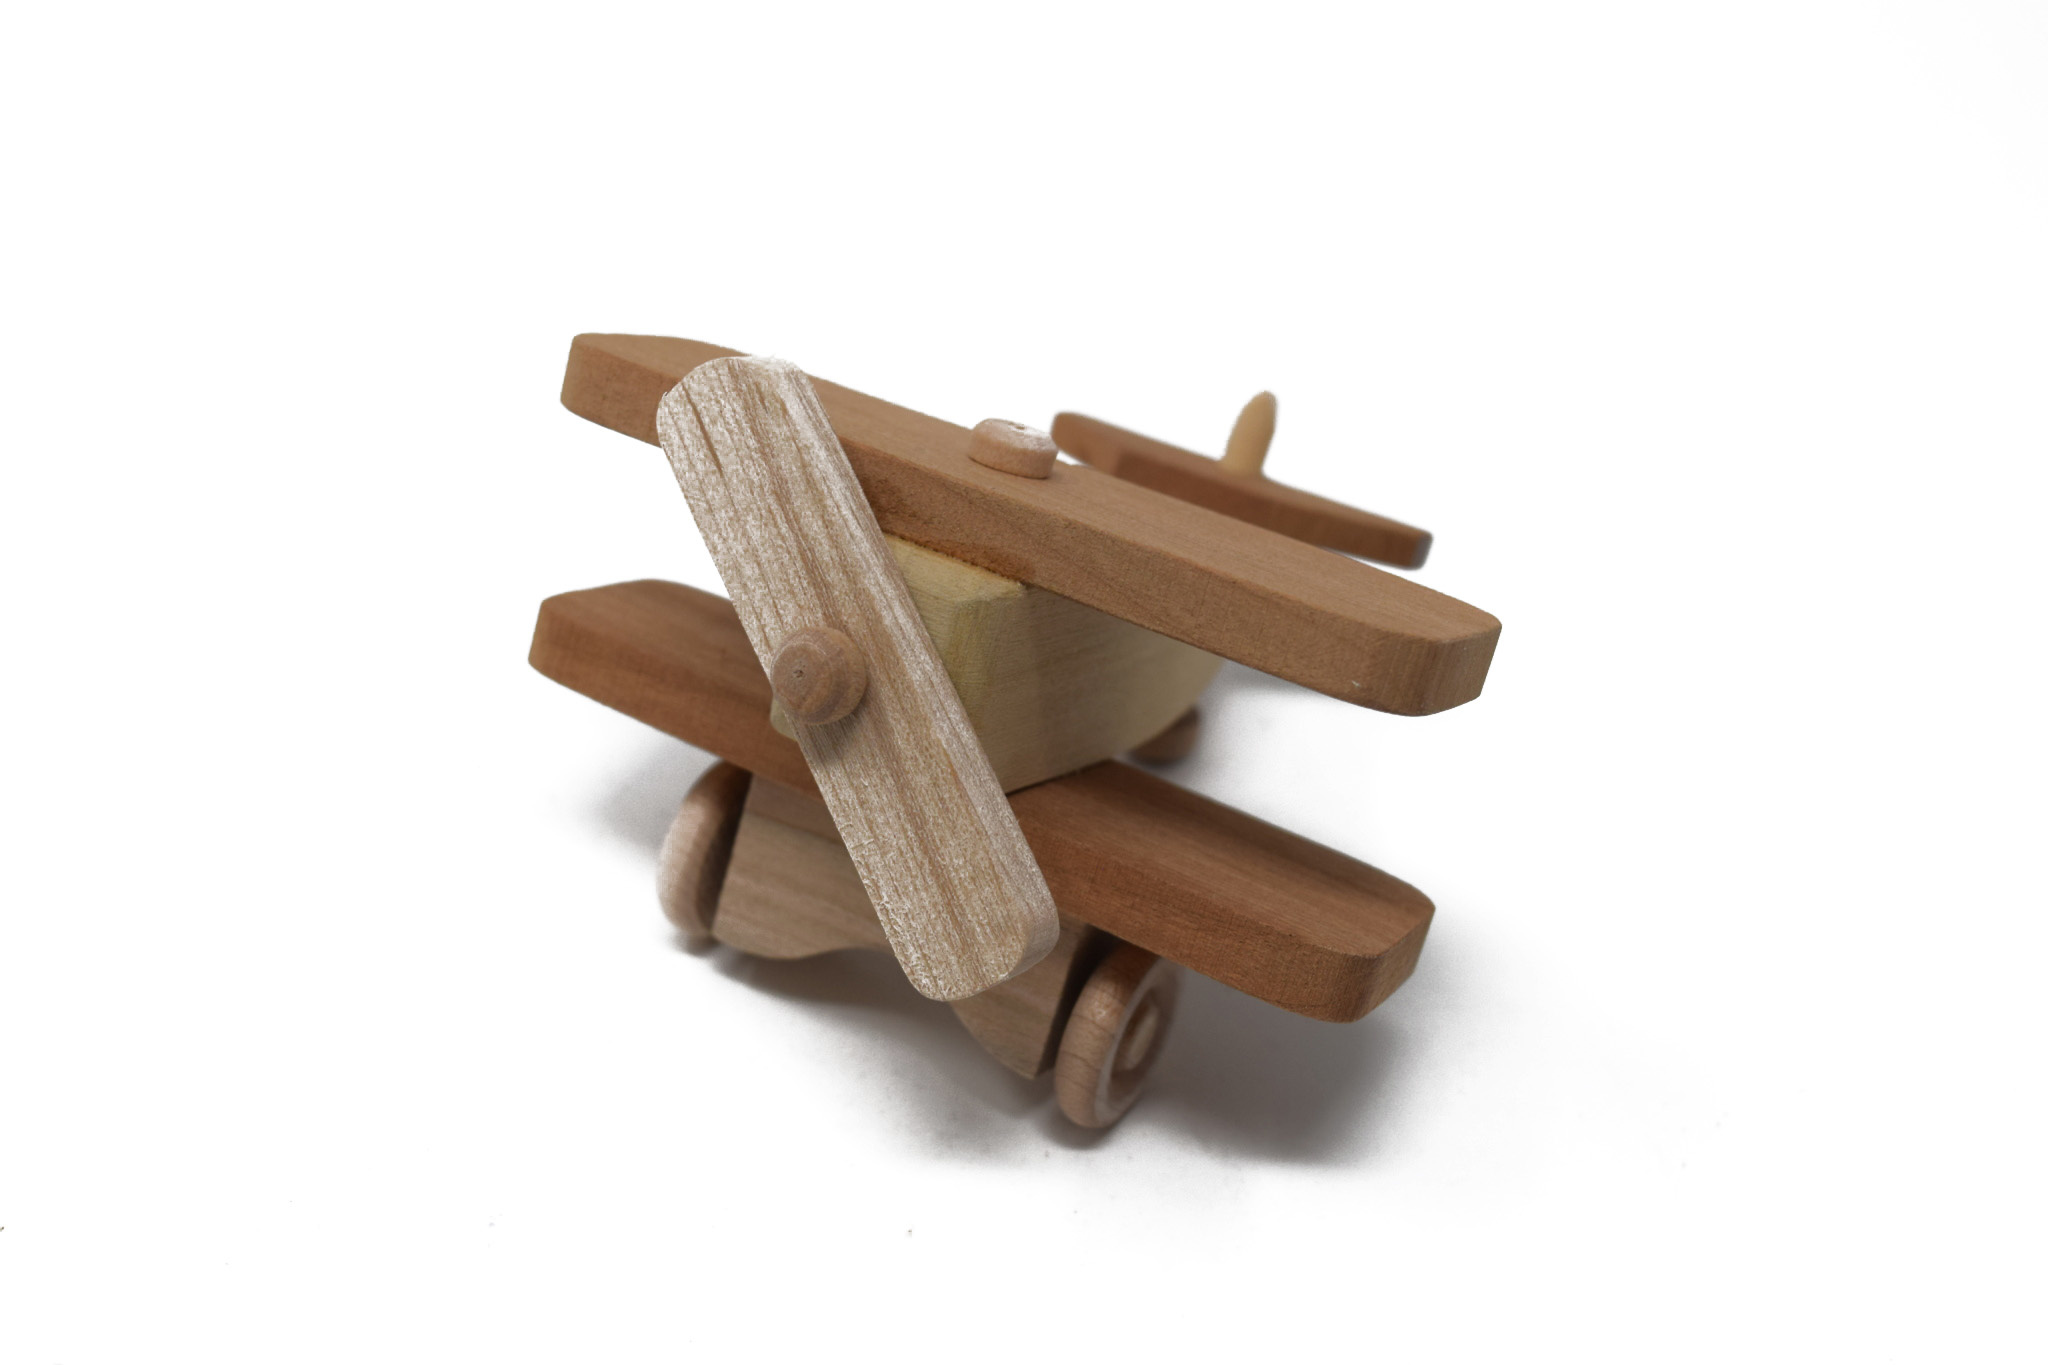 Wooden Airplane Toy-1